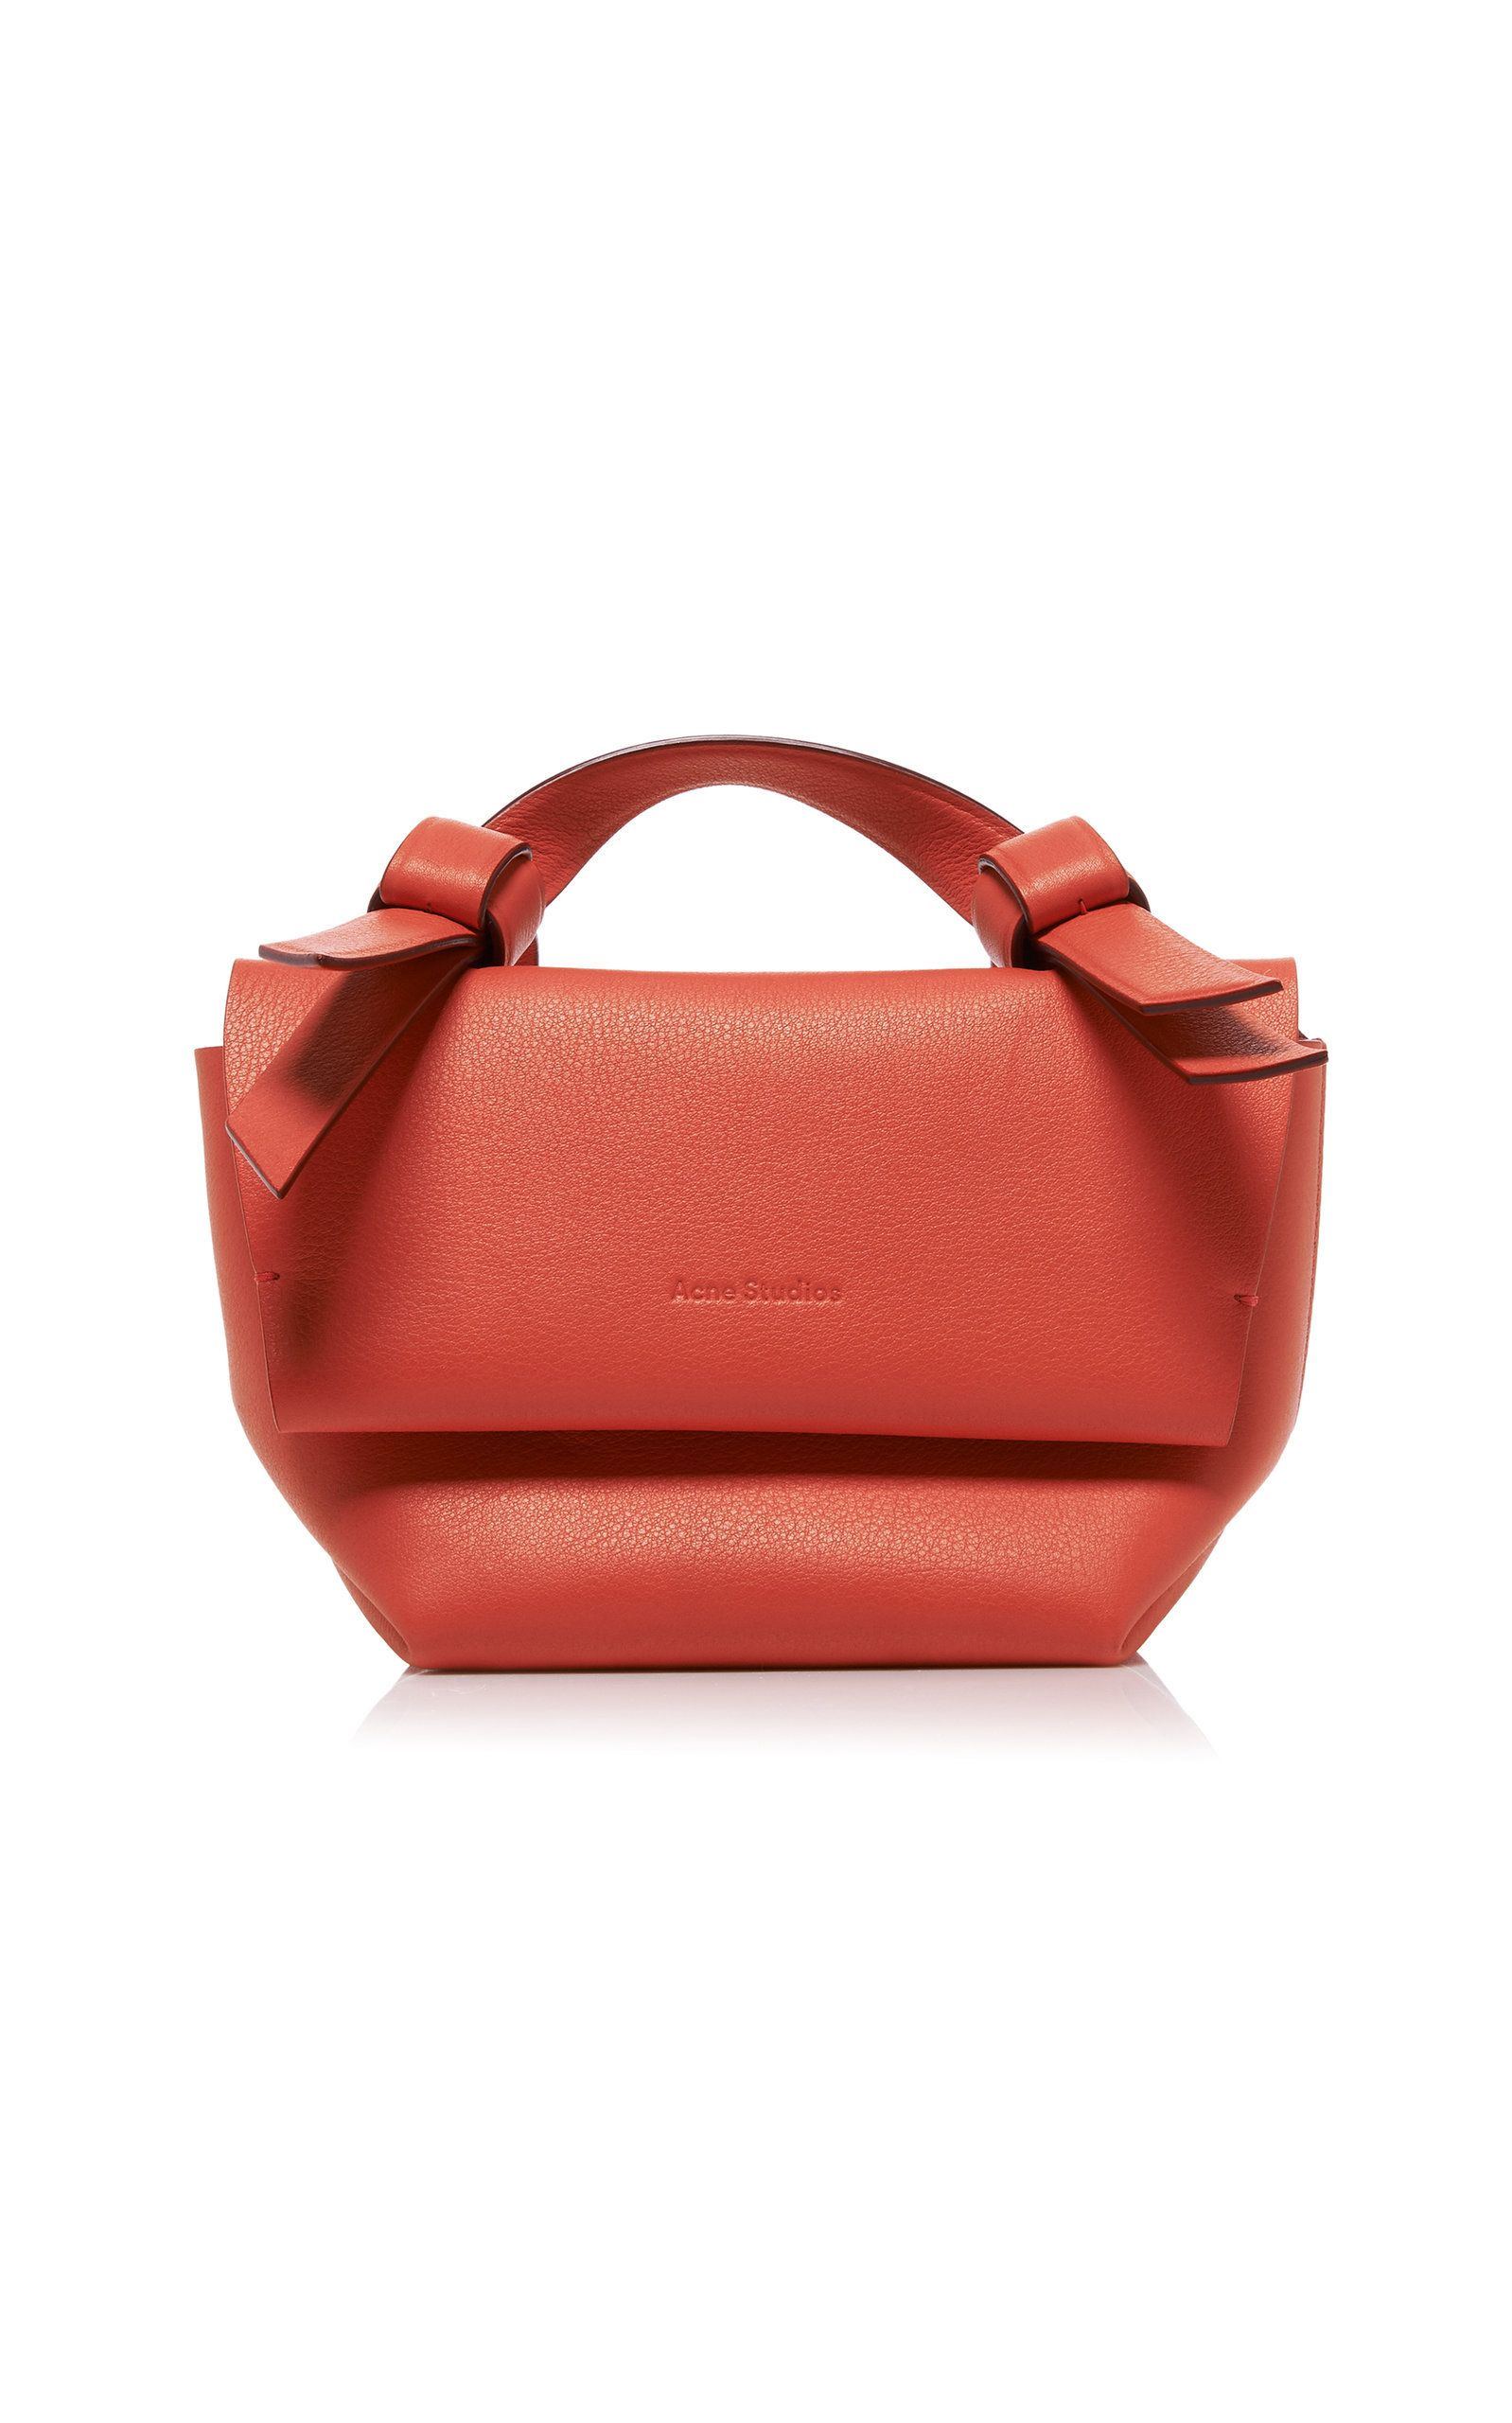 f0c266b259 SS 2019 ACNE STUDIOS Musubi Milli Knotted Leather Shoulder Bag ...